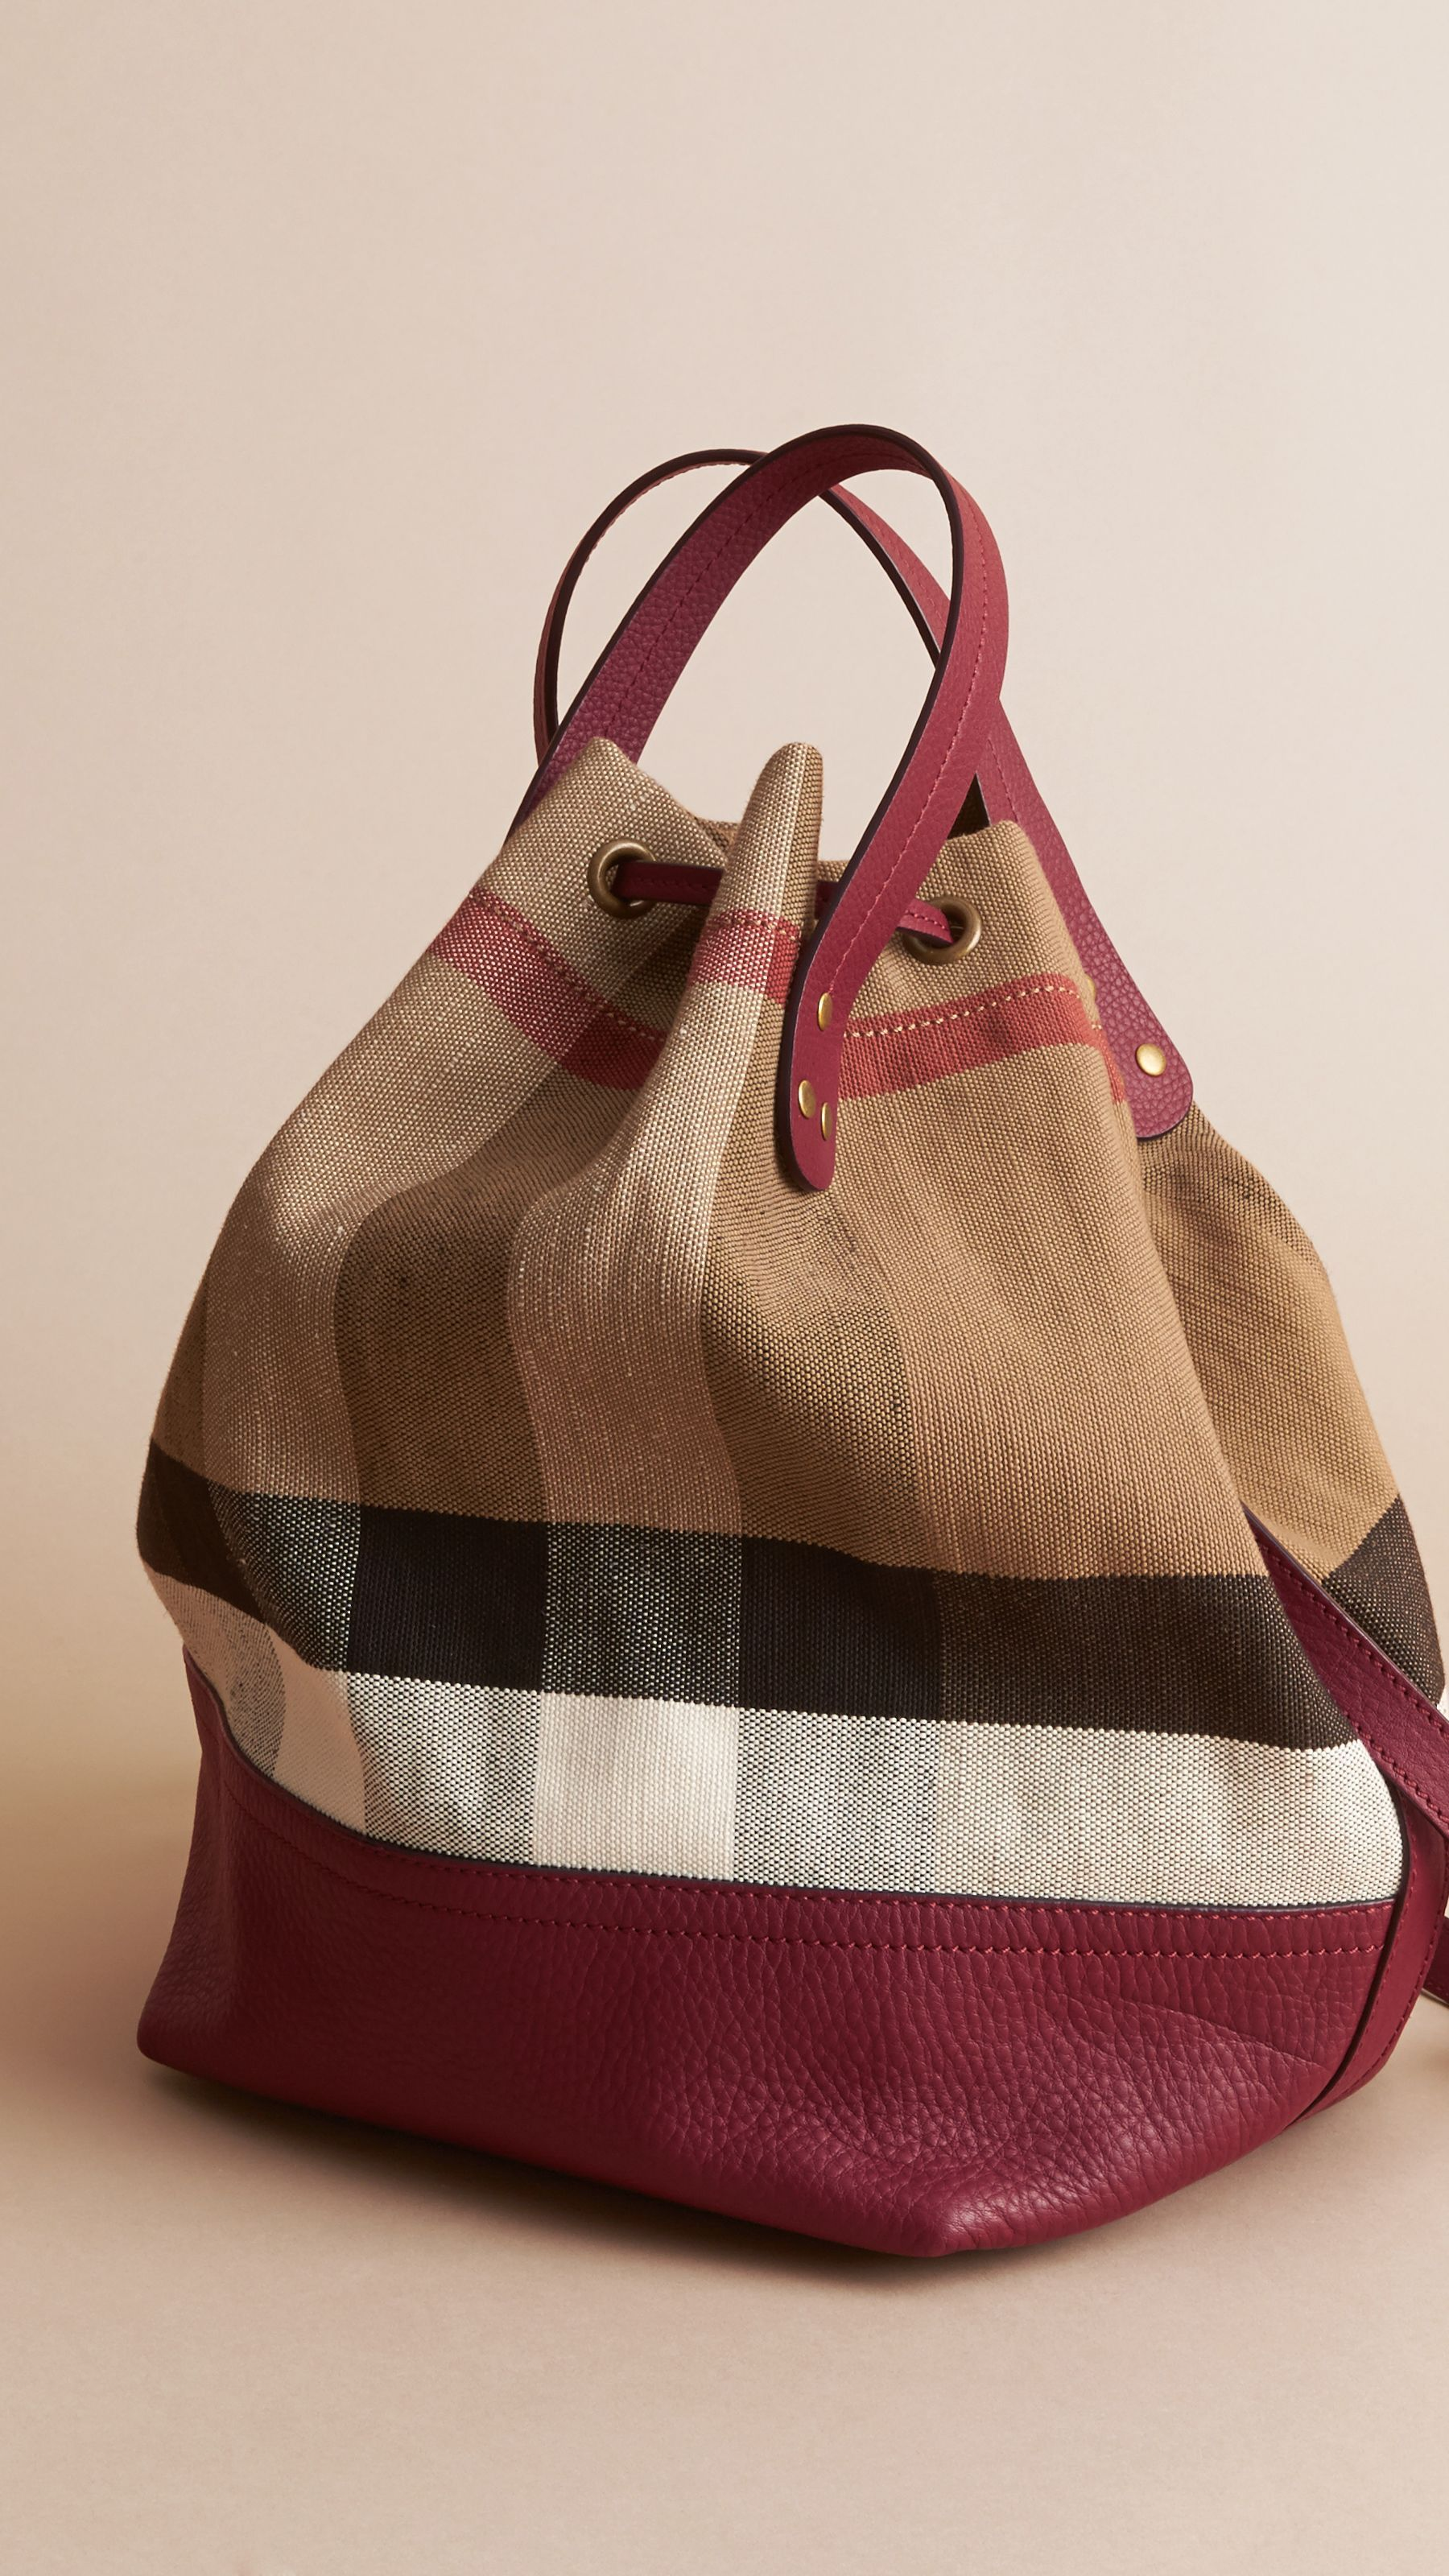 cbc757a5e1bf Medium Canvas Check and Leather Bucket Bag in Burgundy Red - Women